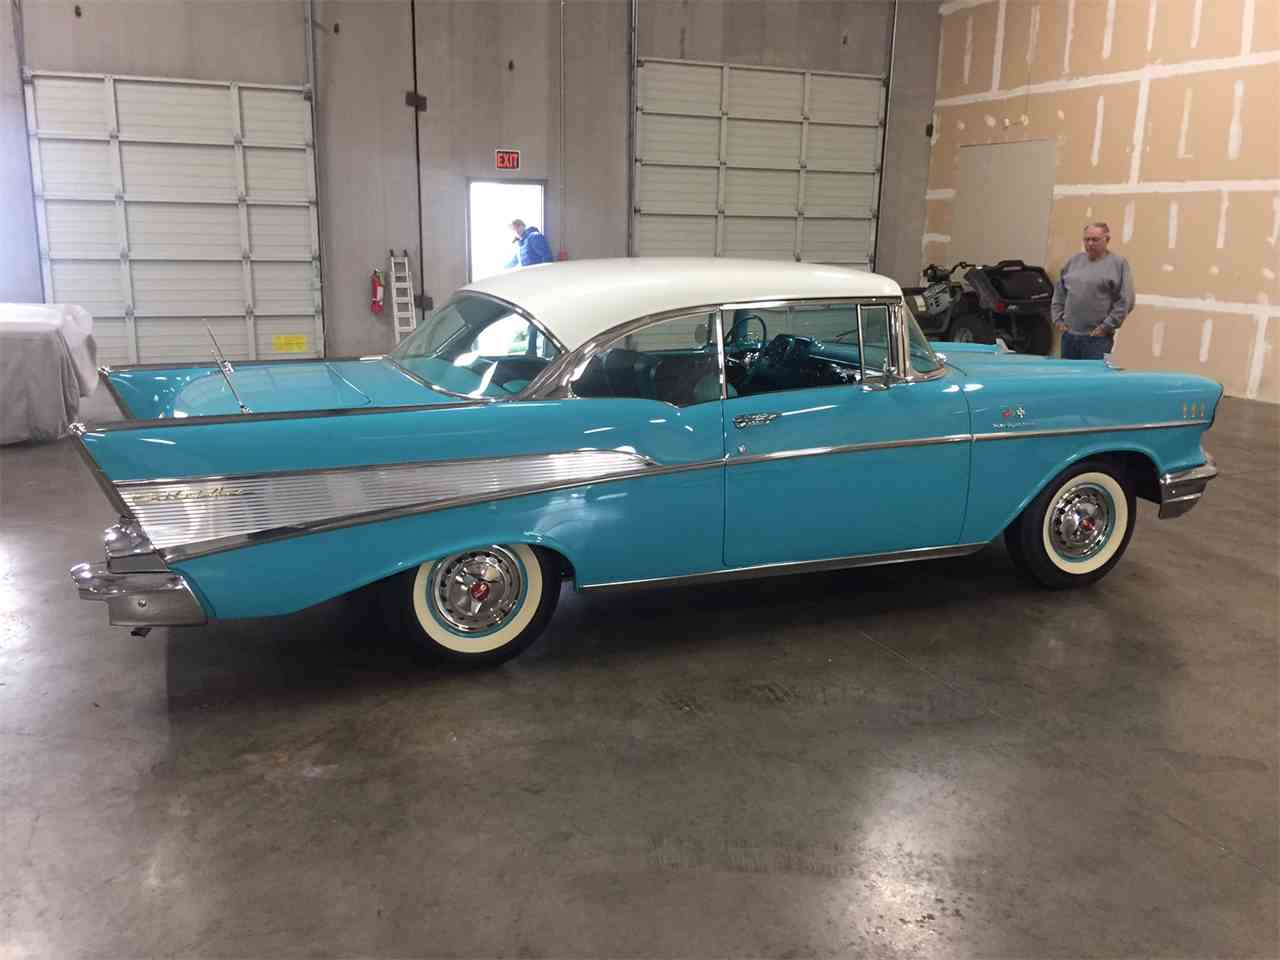 Chevrolet bel air hardtop for sale upcoming chevrolet - 1957 Chevrolet Bel Air For Sale Cc 931694